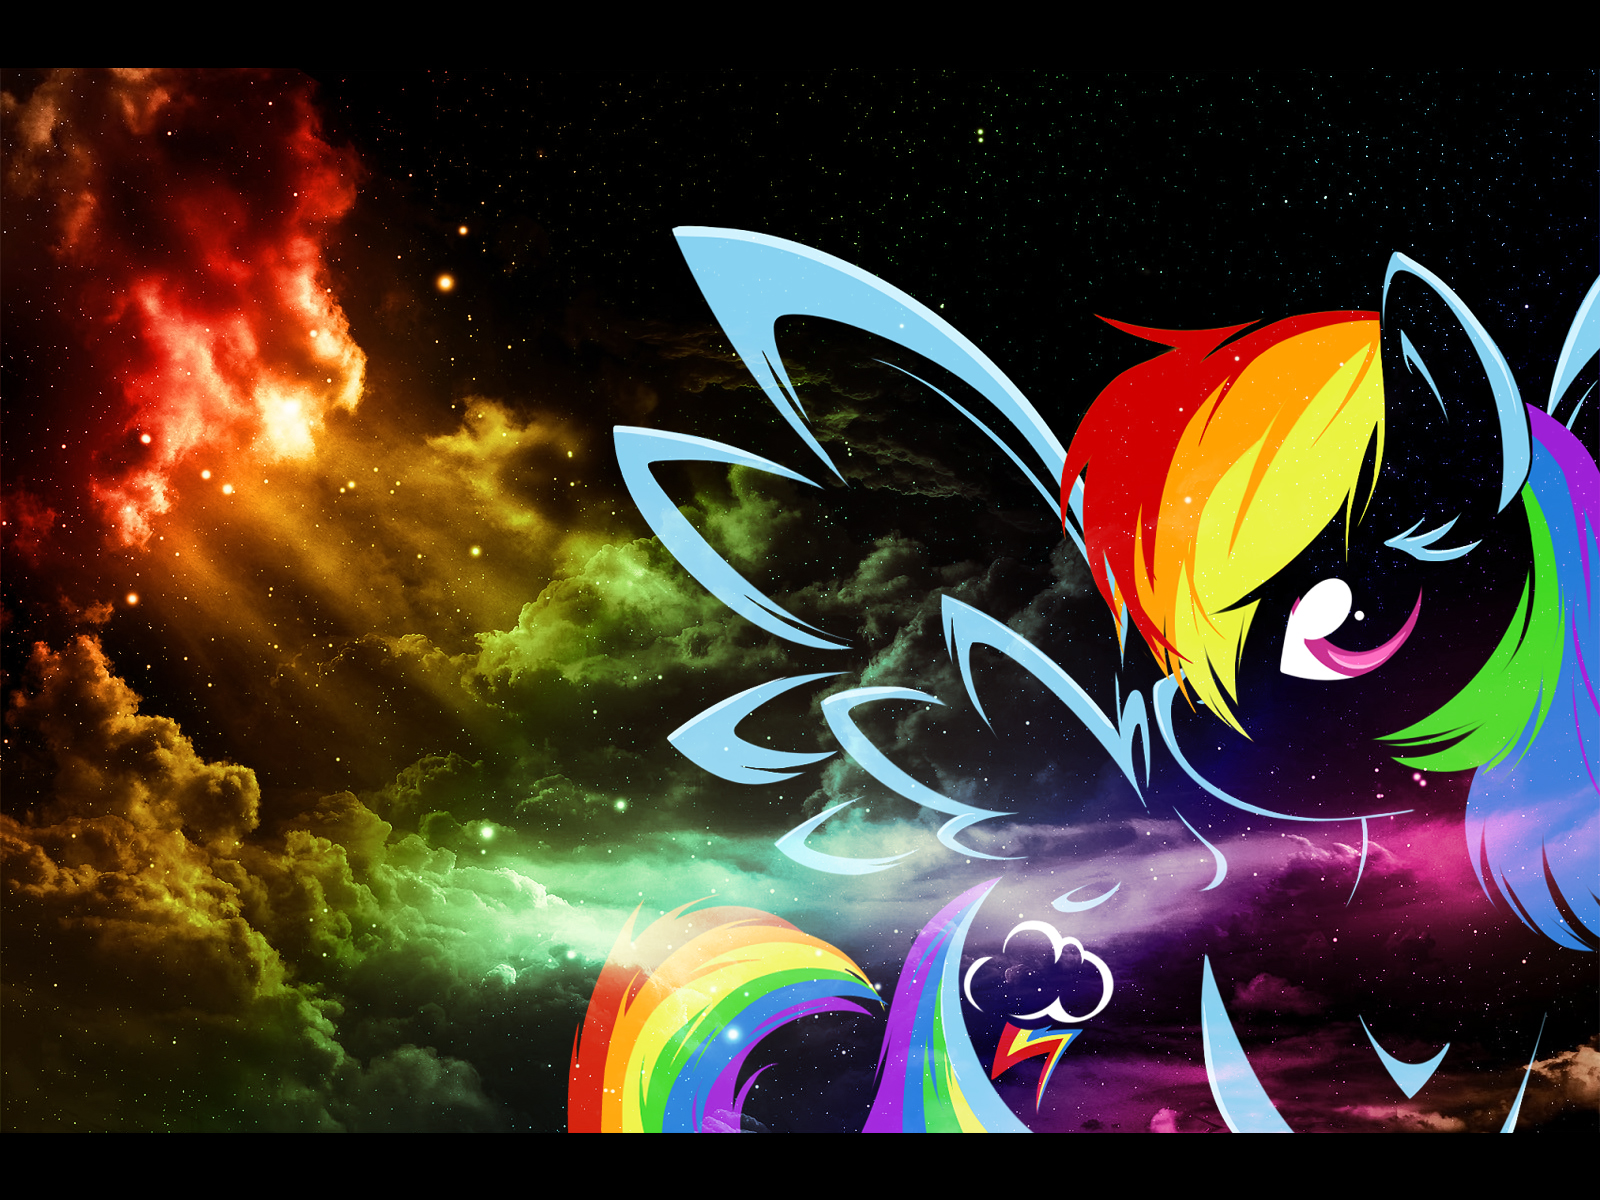 My Little Pony Friendship is Magic images Rainbow Dash Wallpapers HD 1600x1200